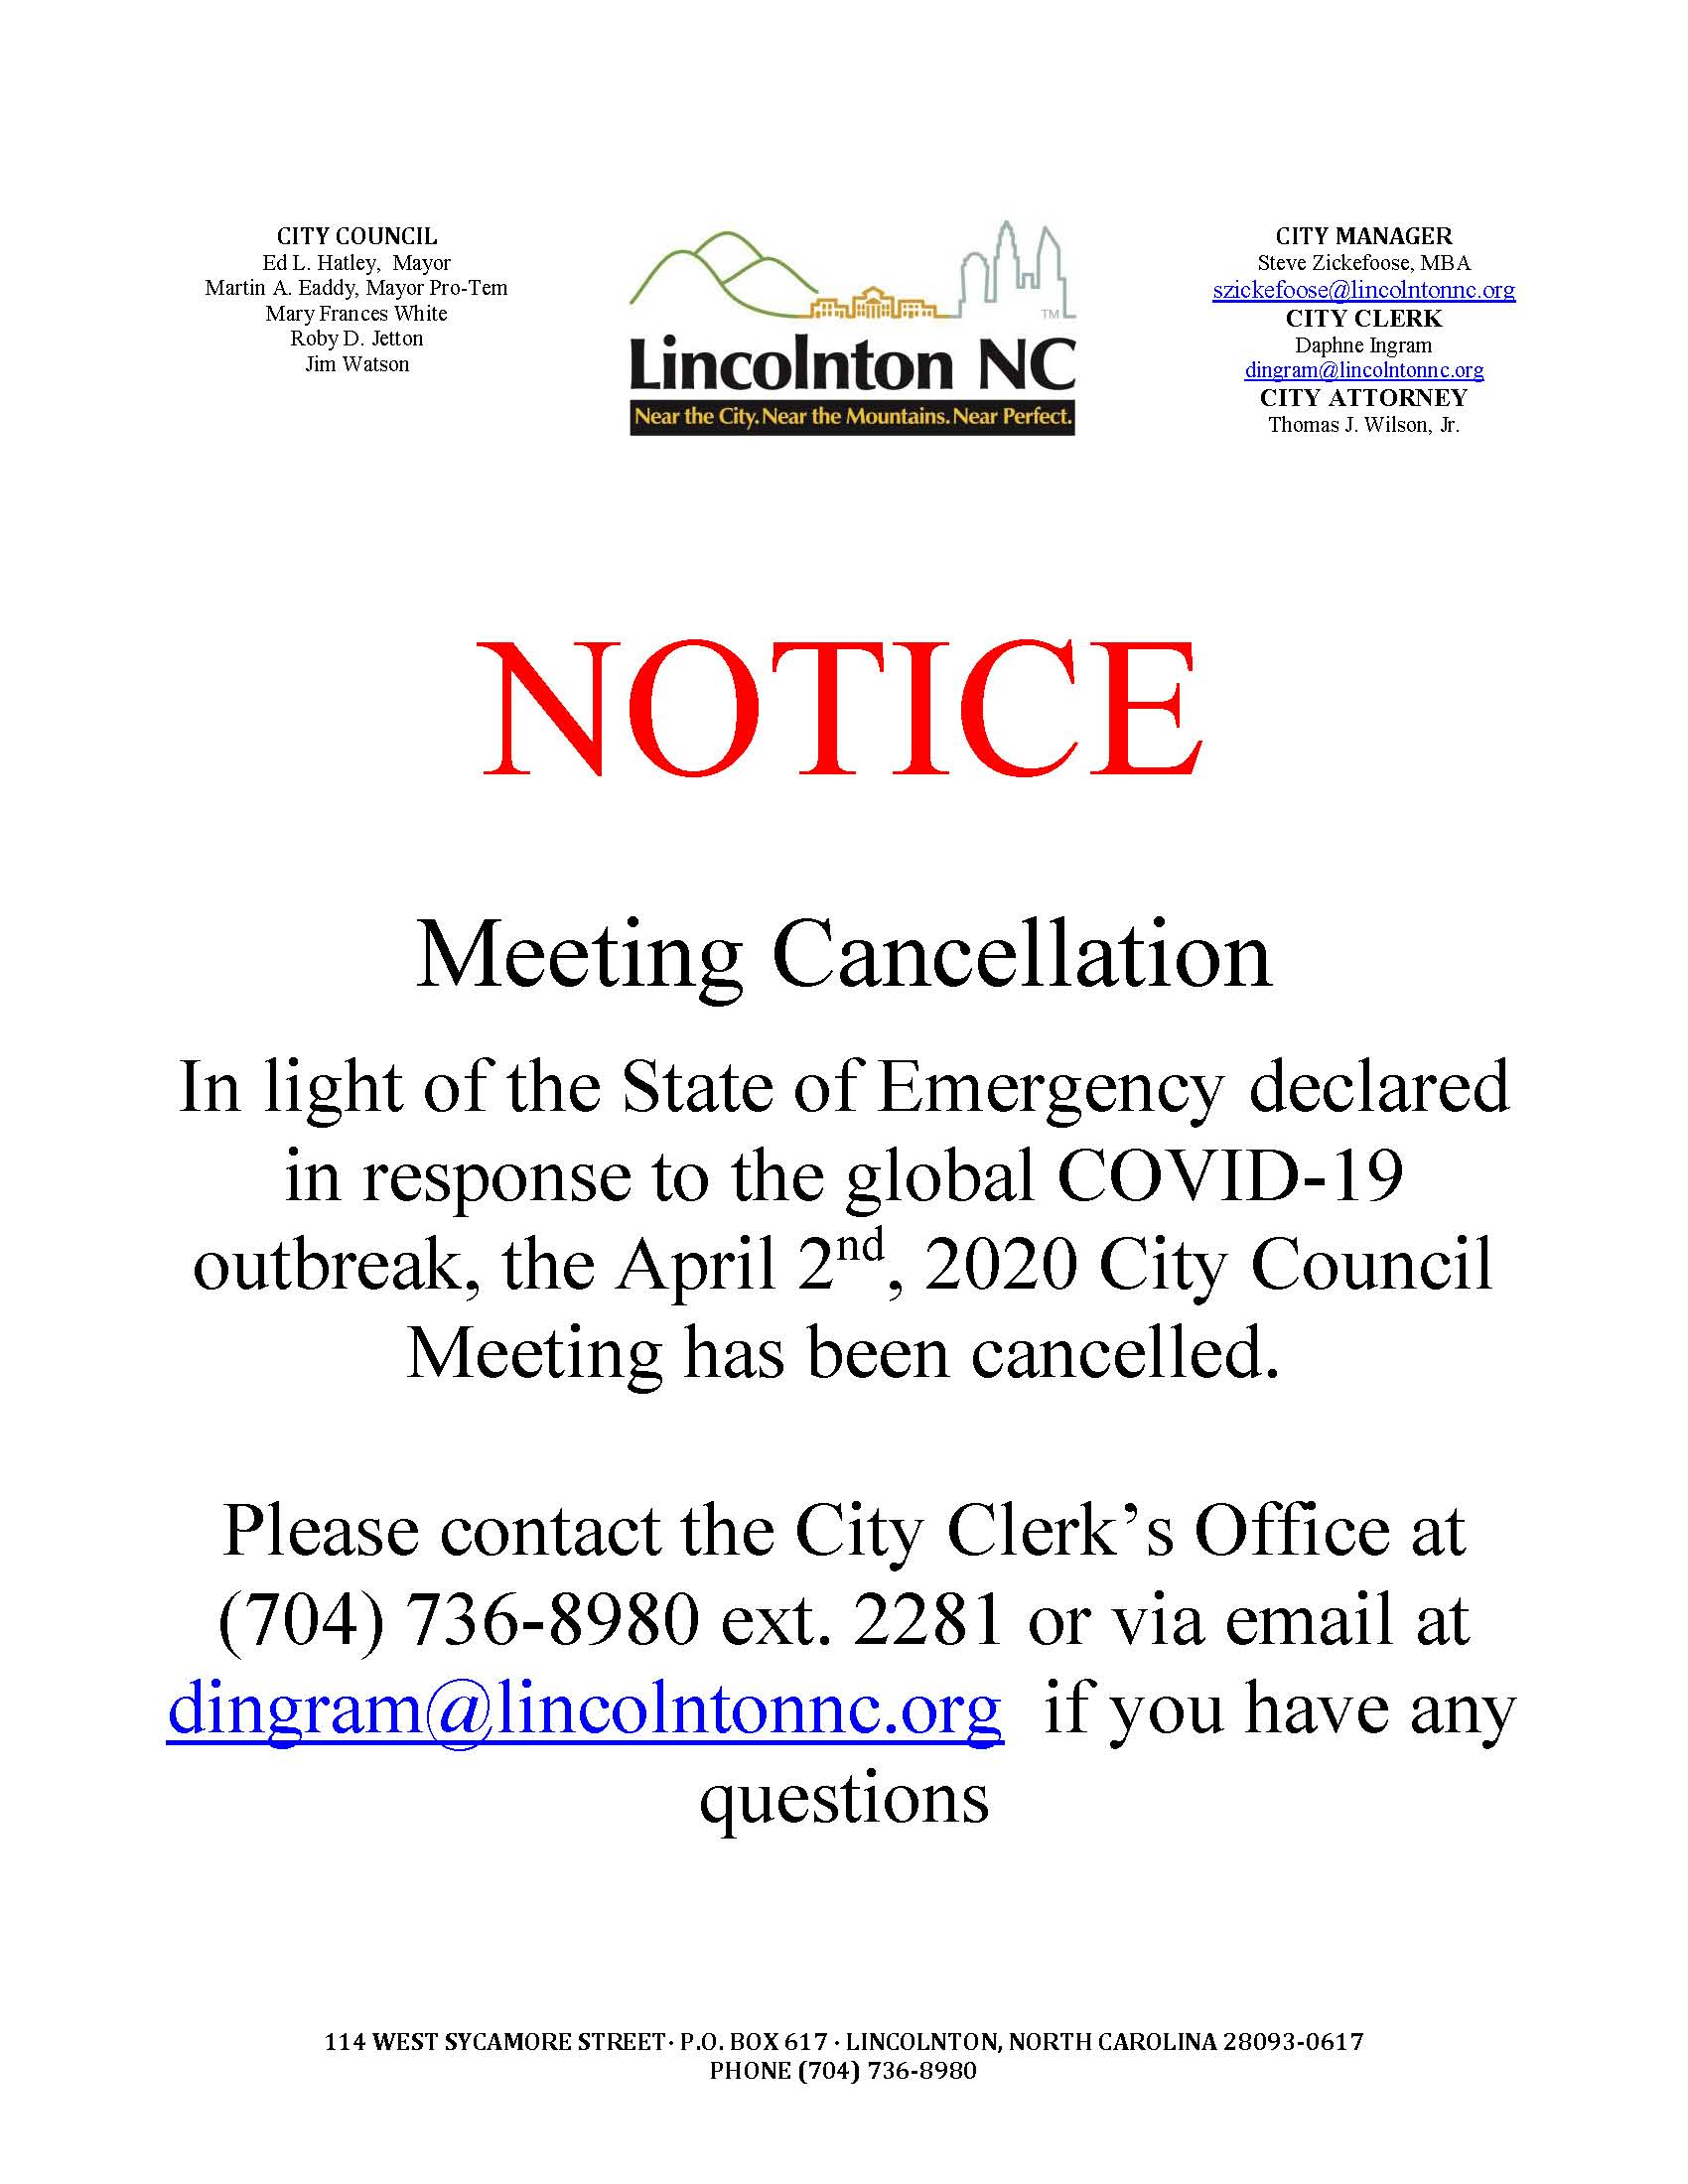 notice - meeting cancellation 4-2-2020